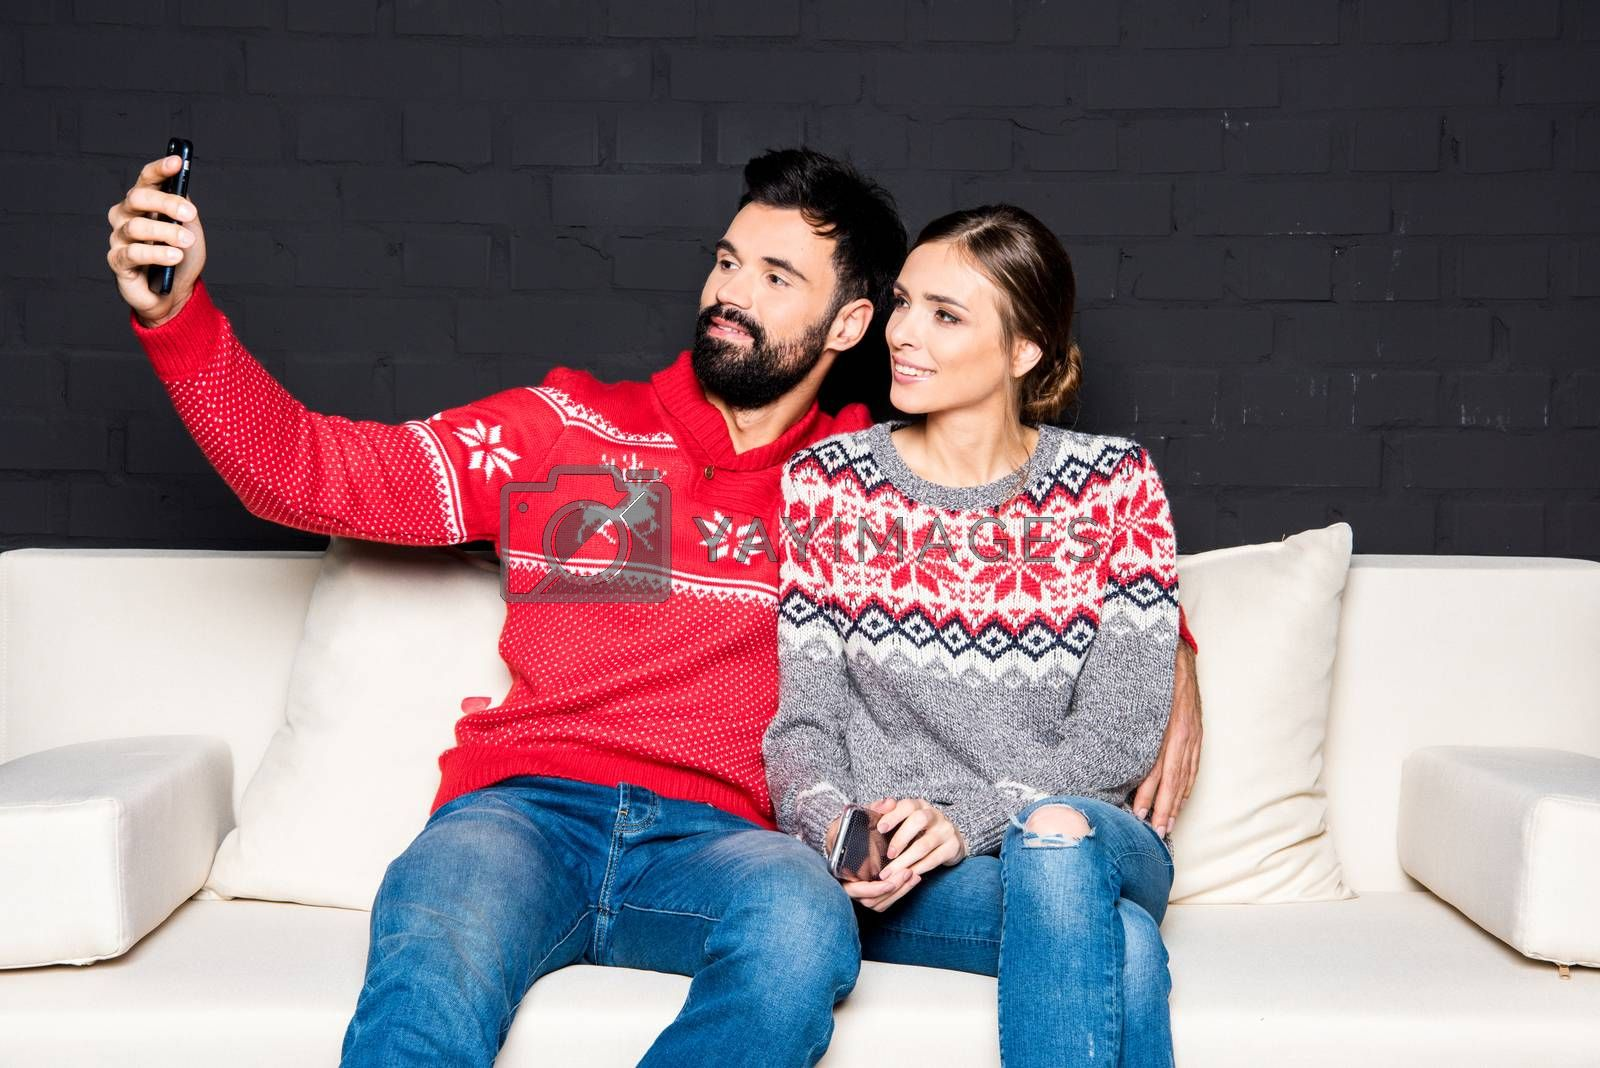 Couple in colorful sweaters taking selfie while sitting on white couch